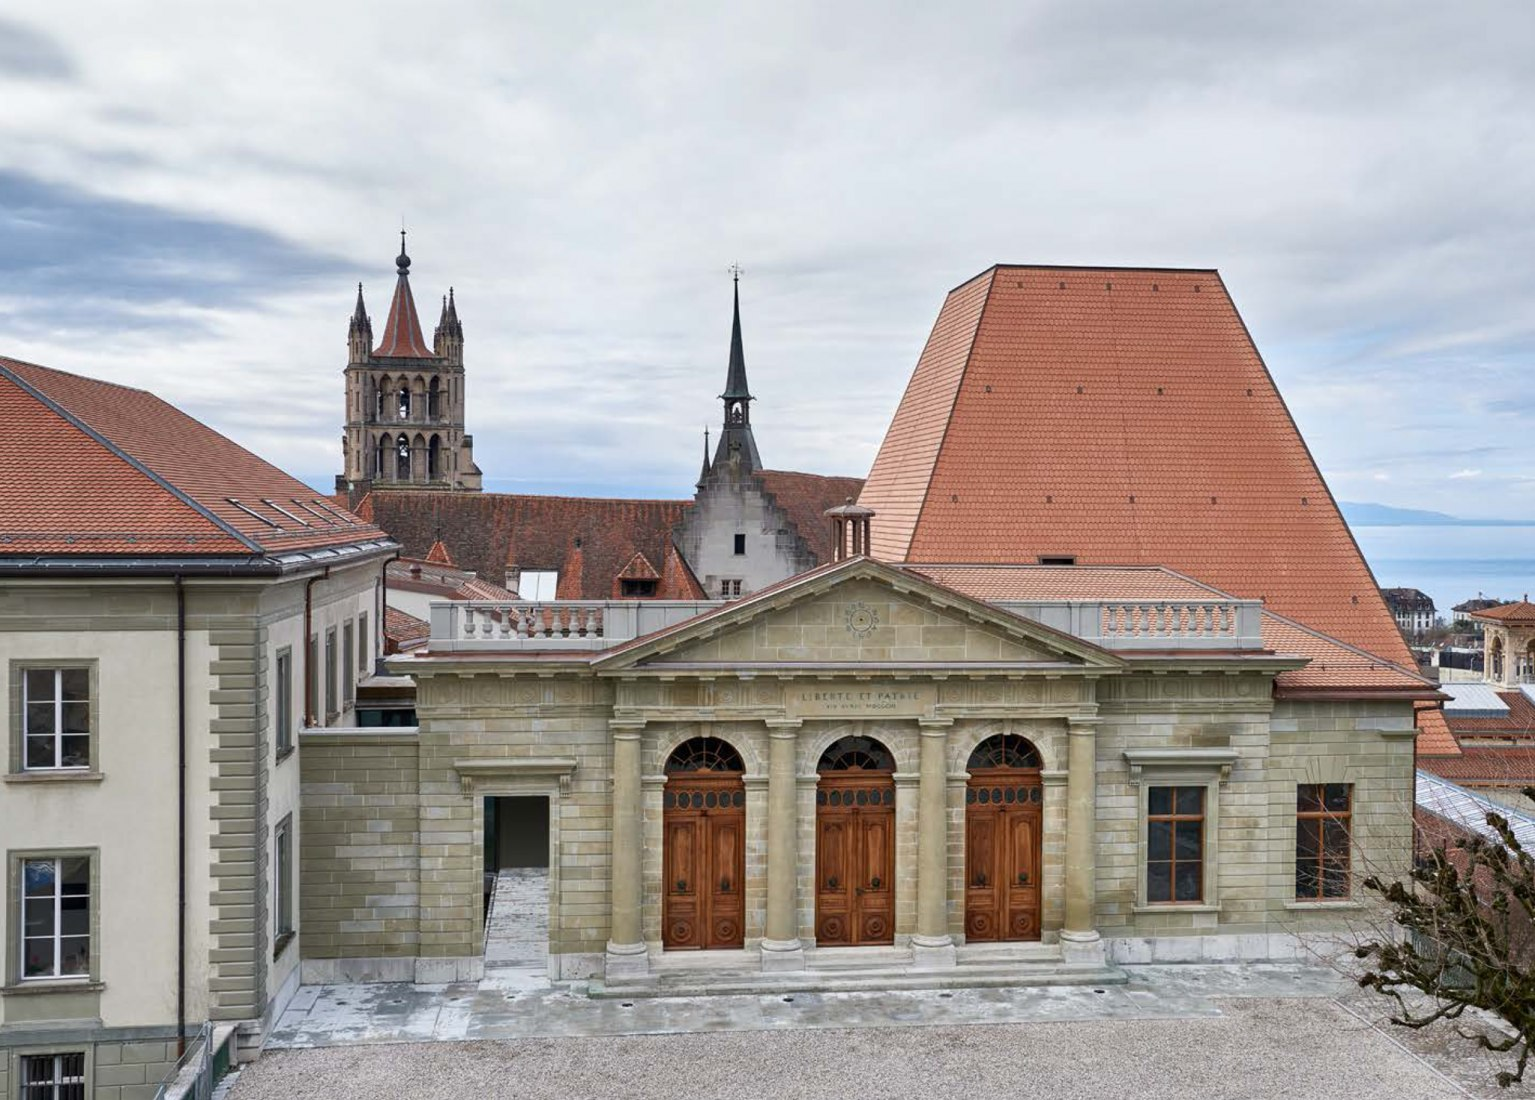 New parliament of the canton of vaud already open by bonell i gil